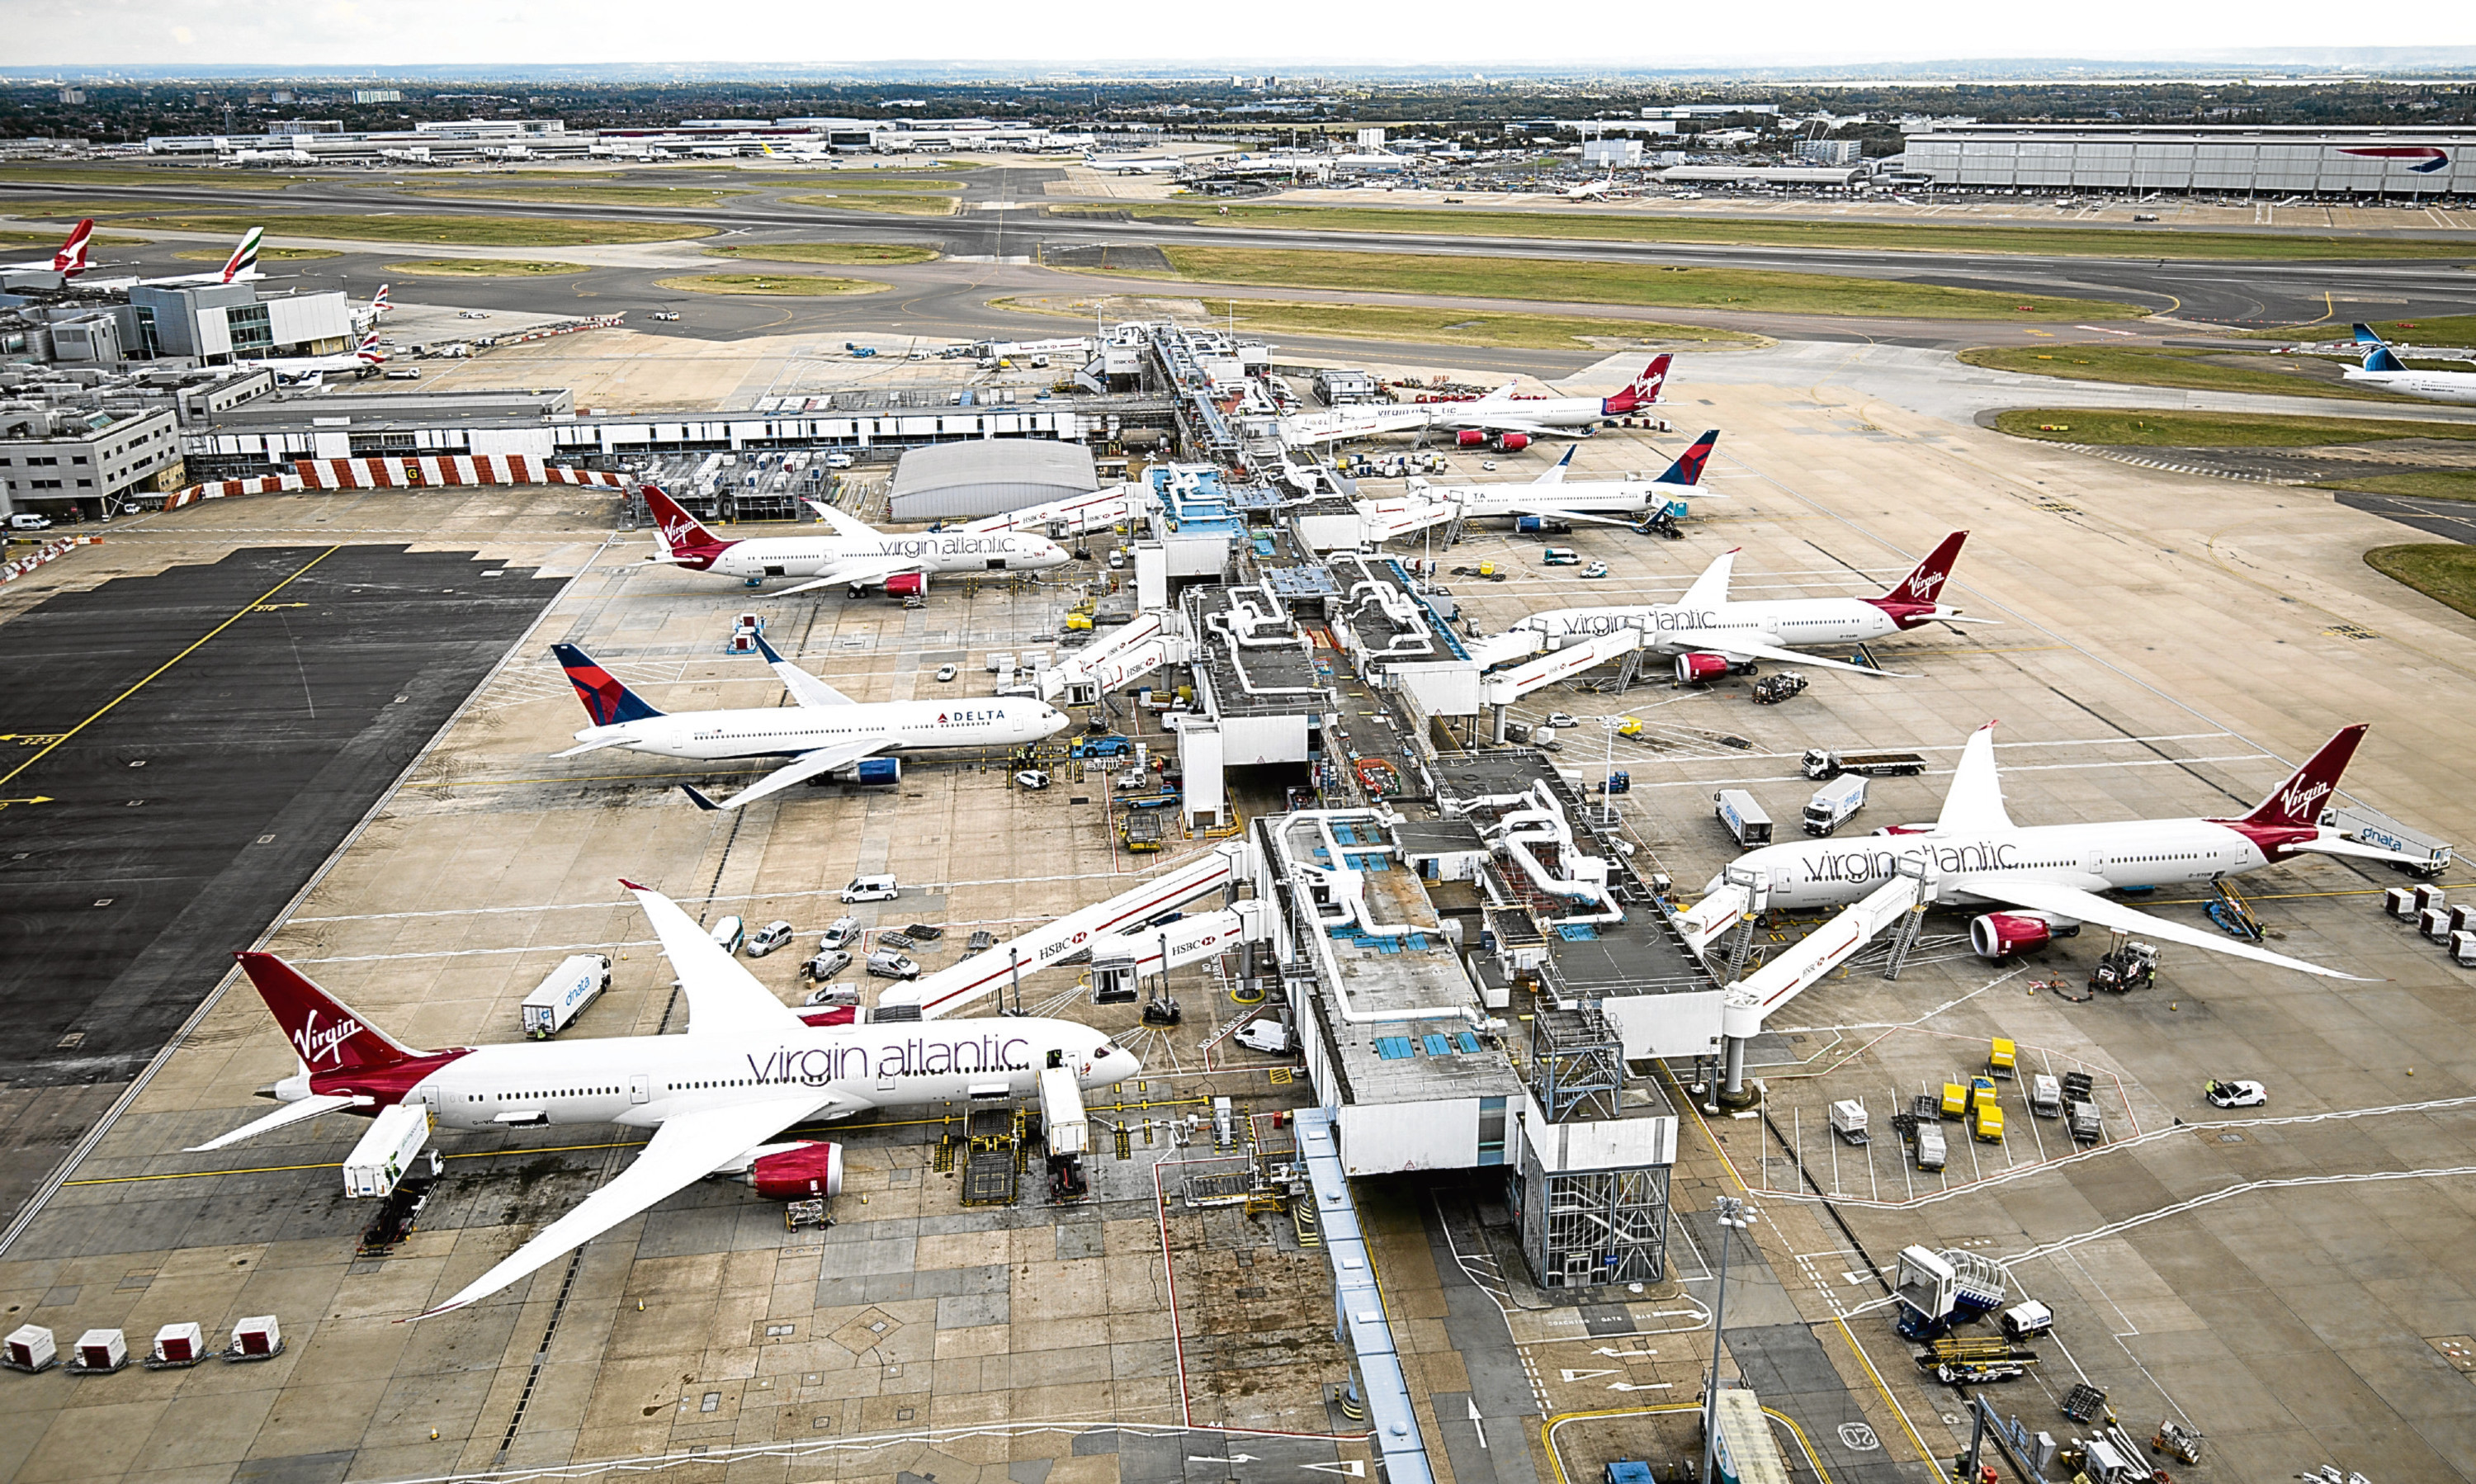 Aircraft wait on stands at Hathrow's Terminal 3